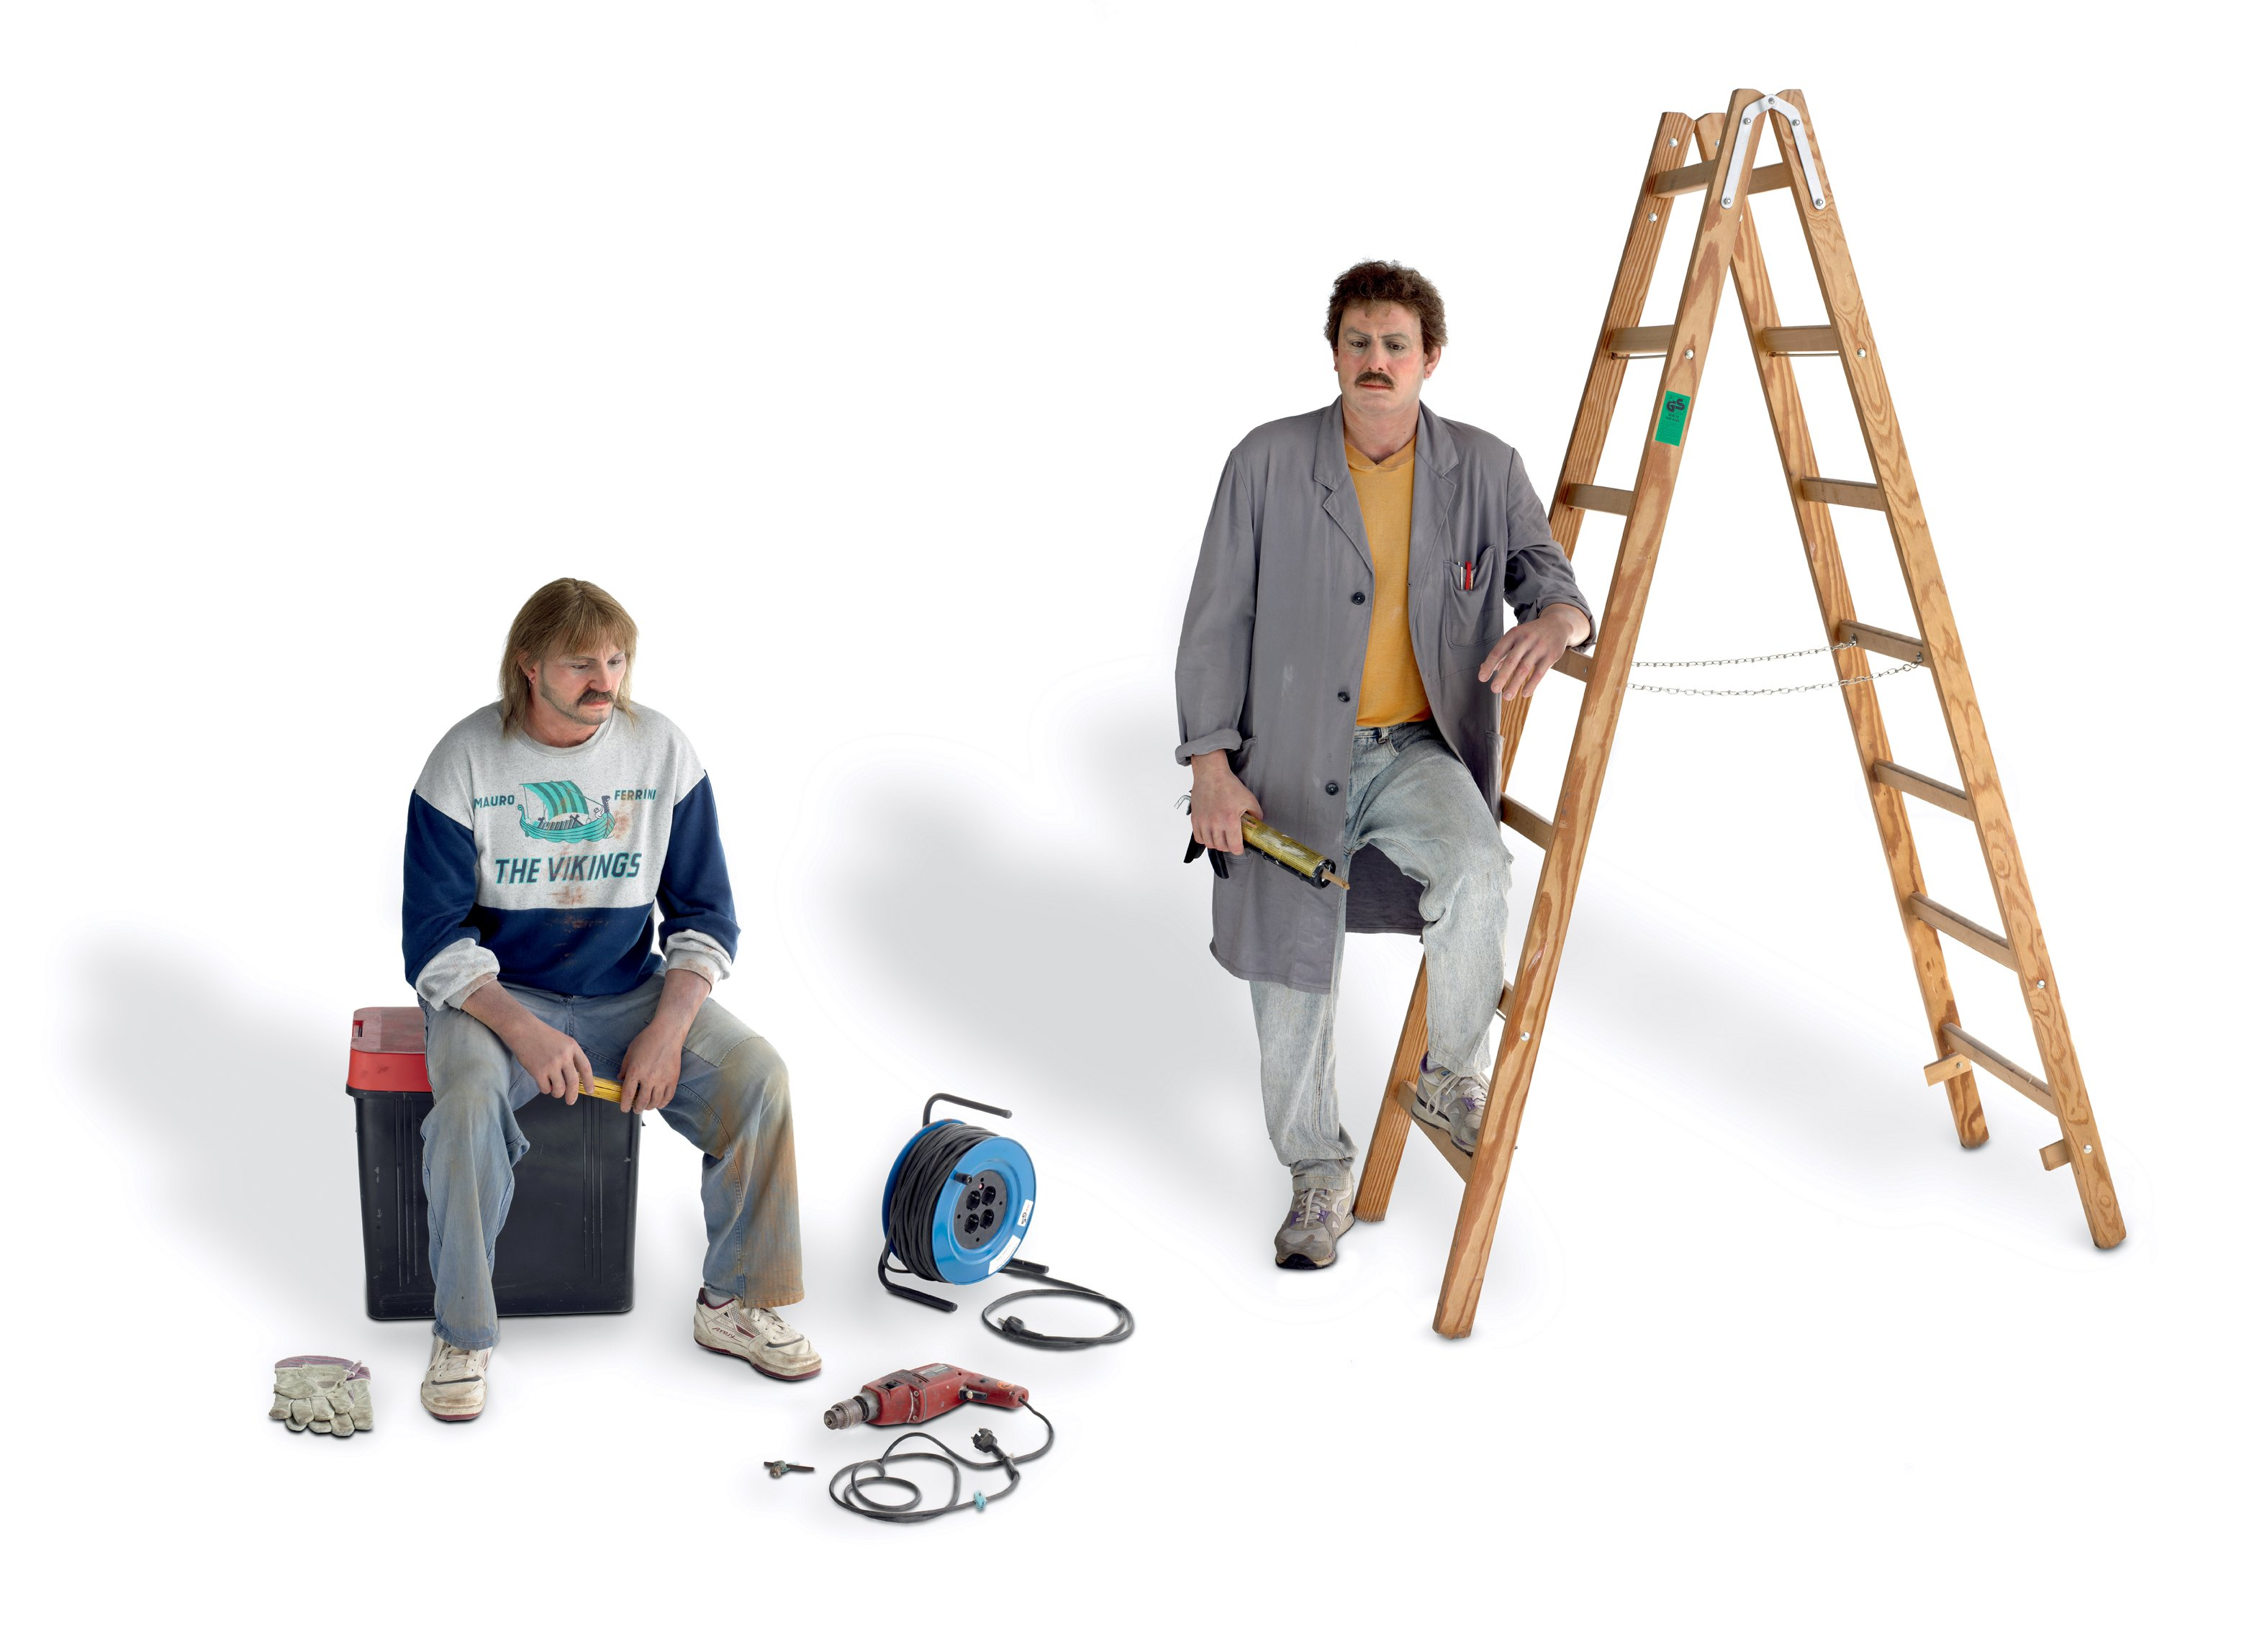 03. Duane Hanson_Two Workers.jpg